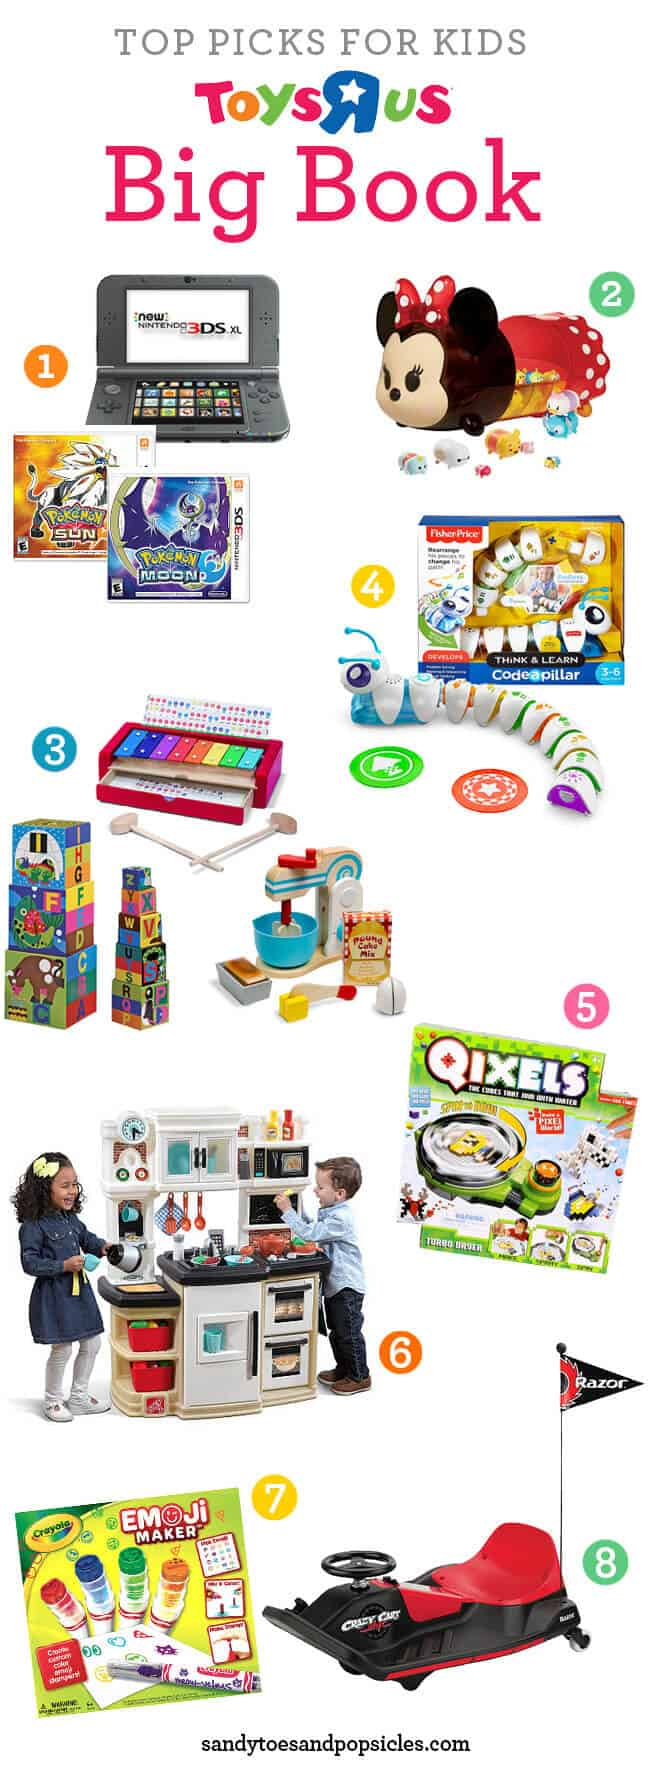 toys-r-us-big-book-top-gifts